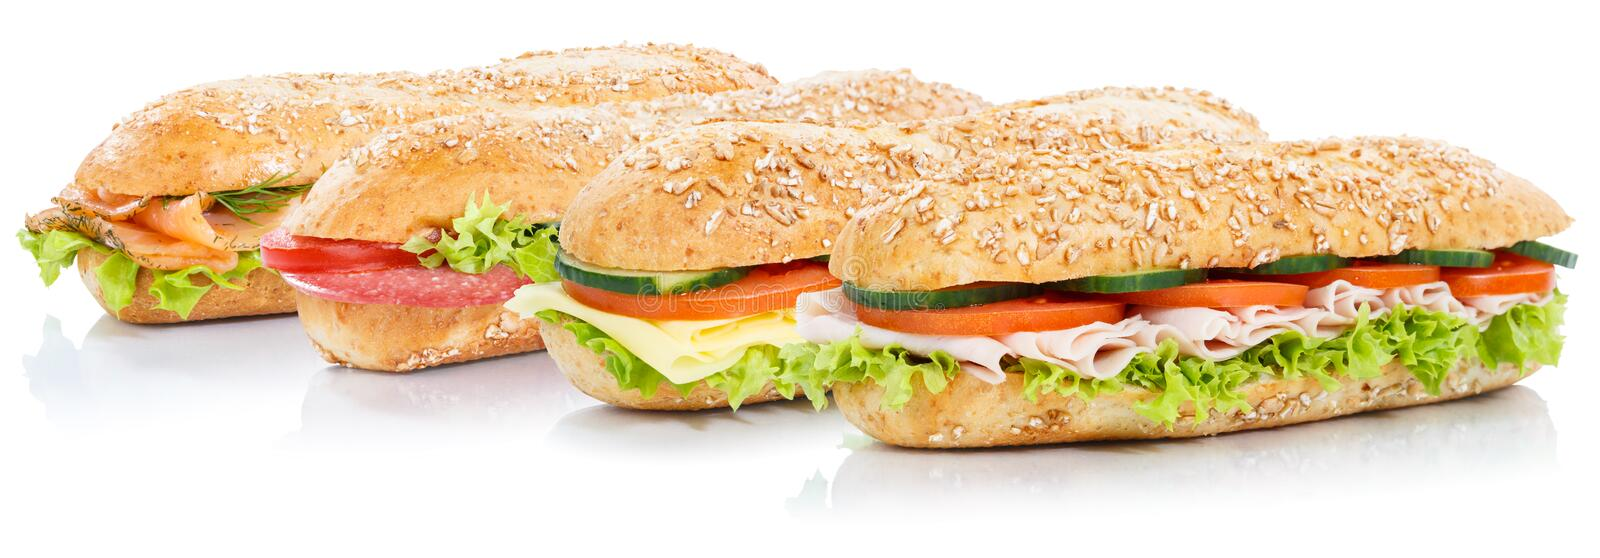 Baguette sub sandwiches with salami ham cheese salmon fish whole. Grains fresh isolated on a white background stock photos